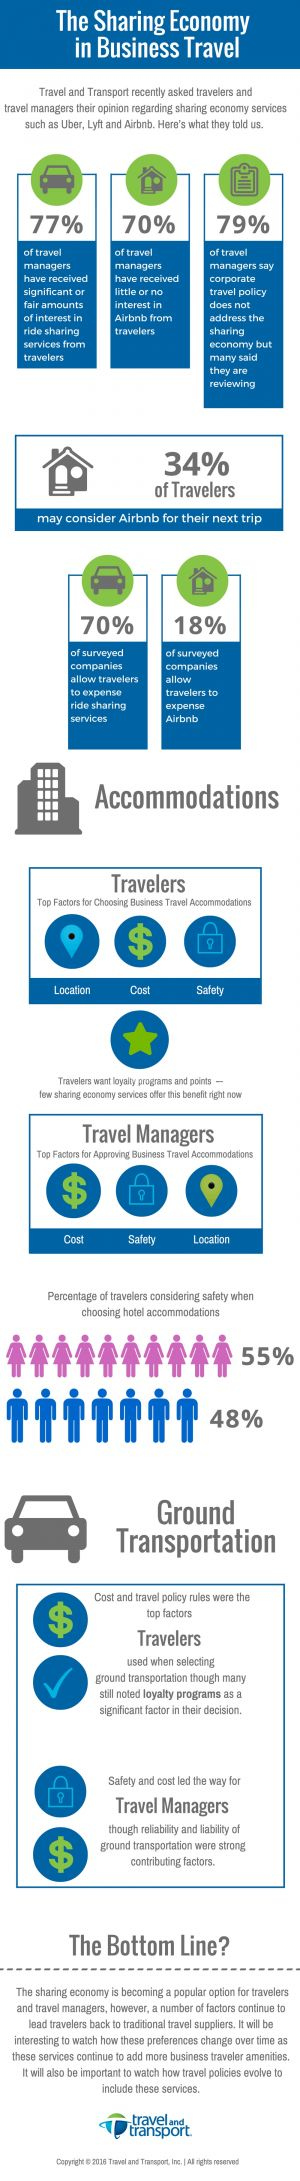 Infographic: The sharing economy in business travel